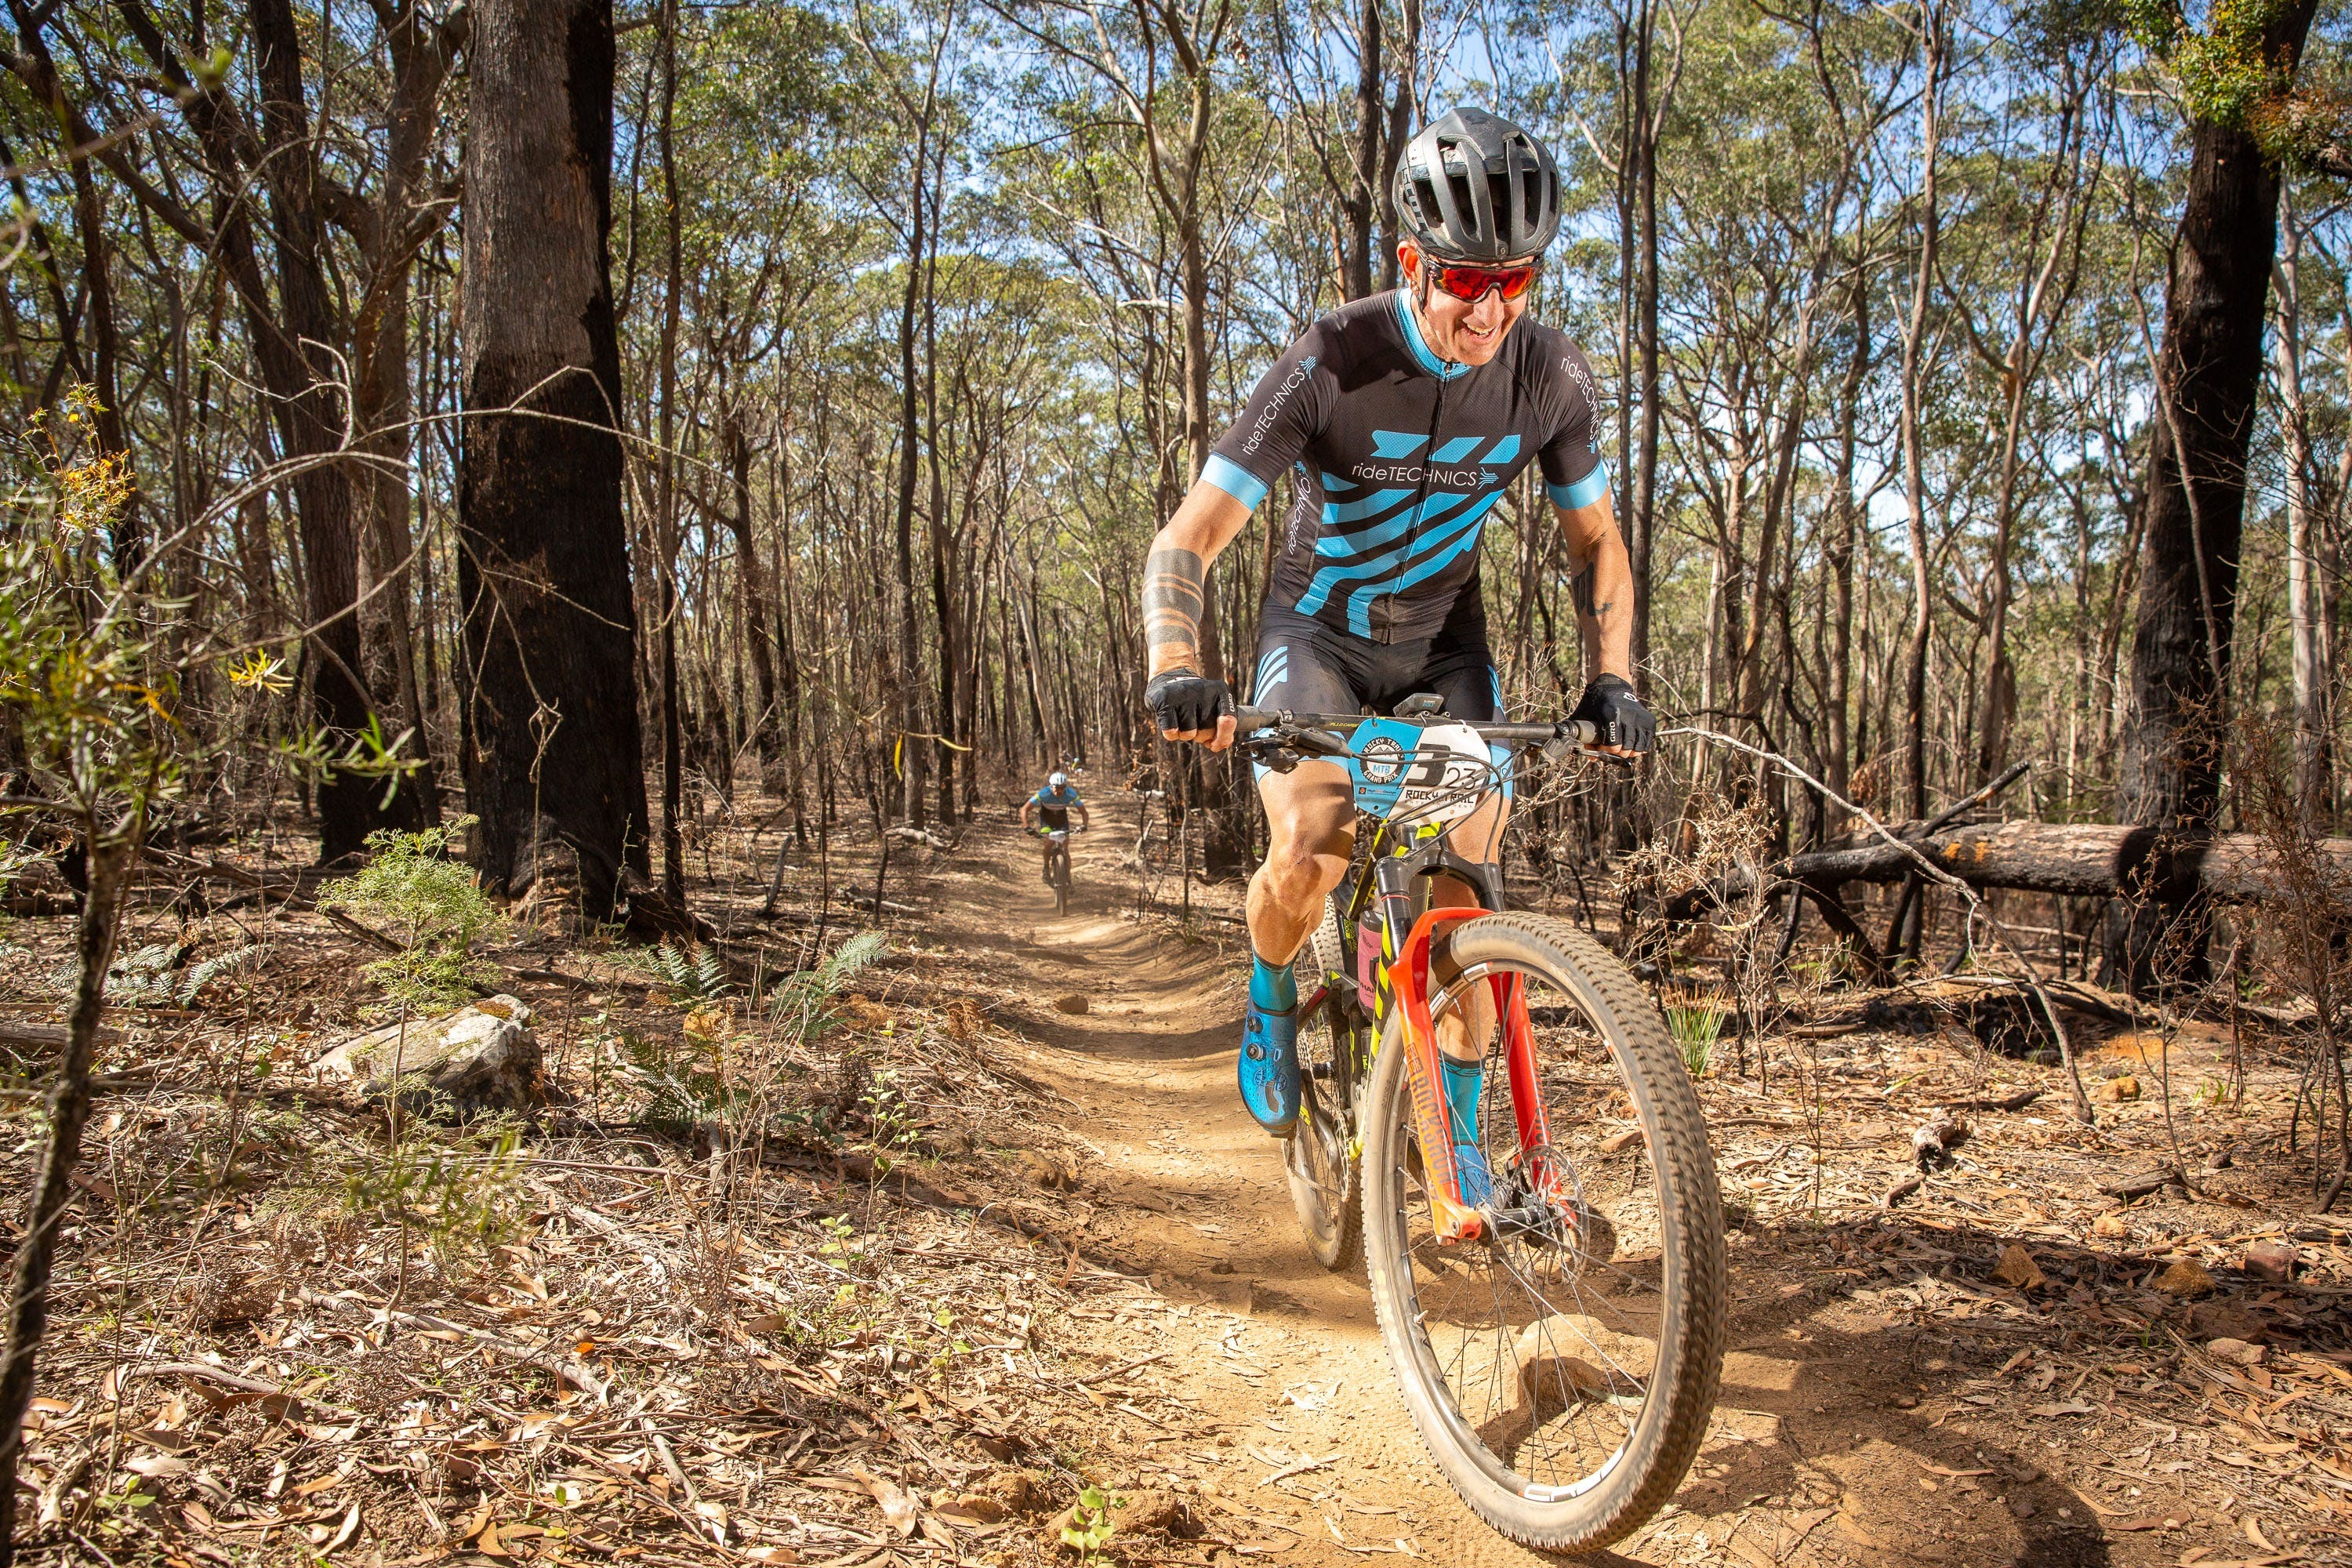 Shimano Mountain Bike Grand Prix Race Six Kempsey - Tourism Canberra